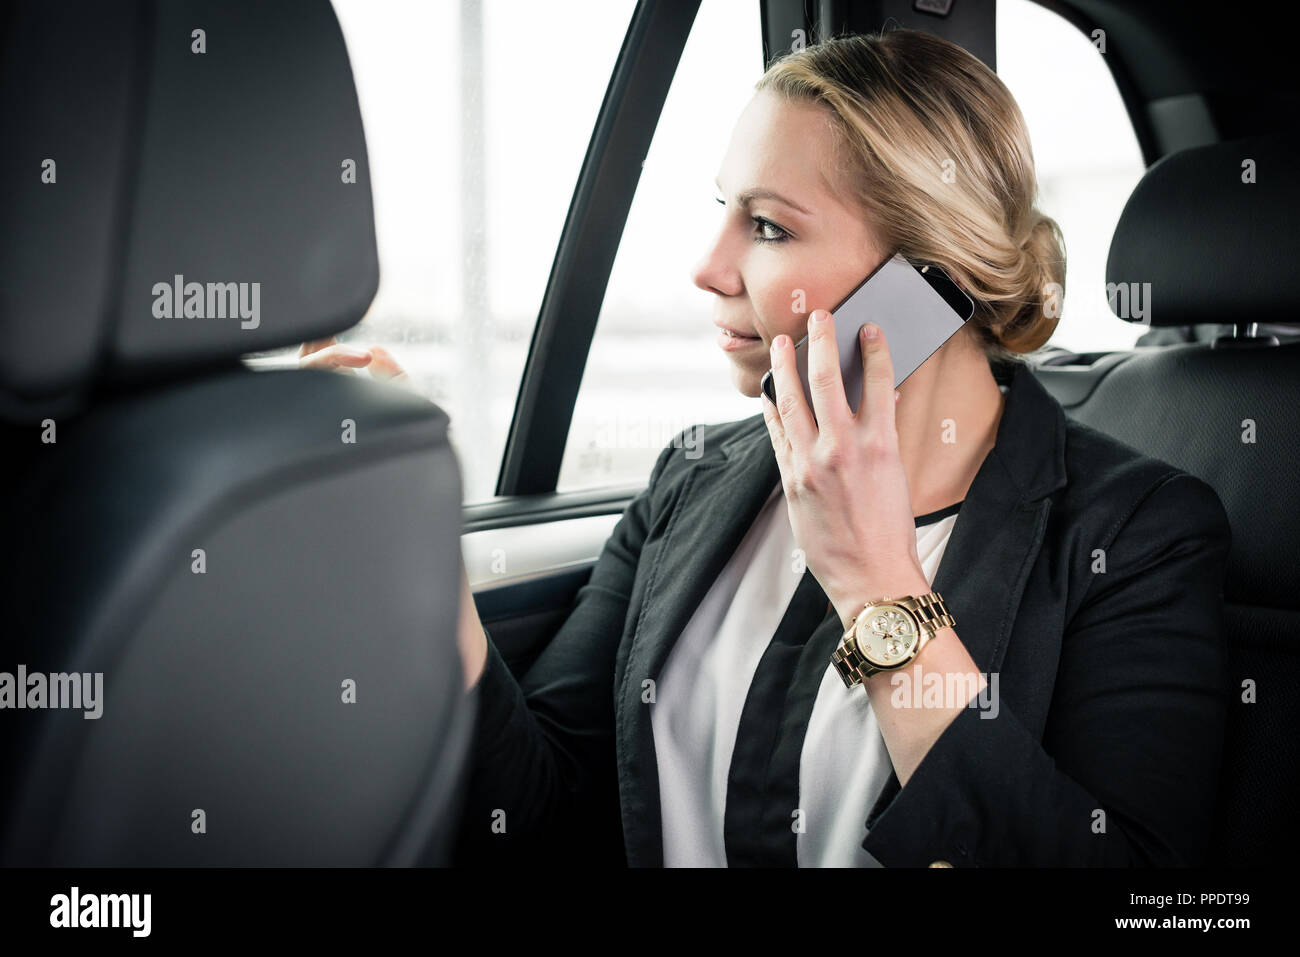 Businesswoman sitting in car talking on cellphone Photo Stock